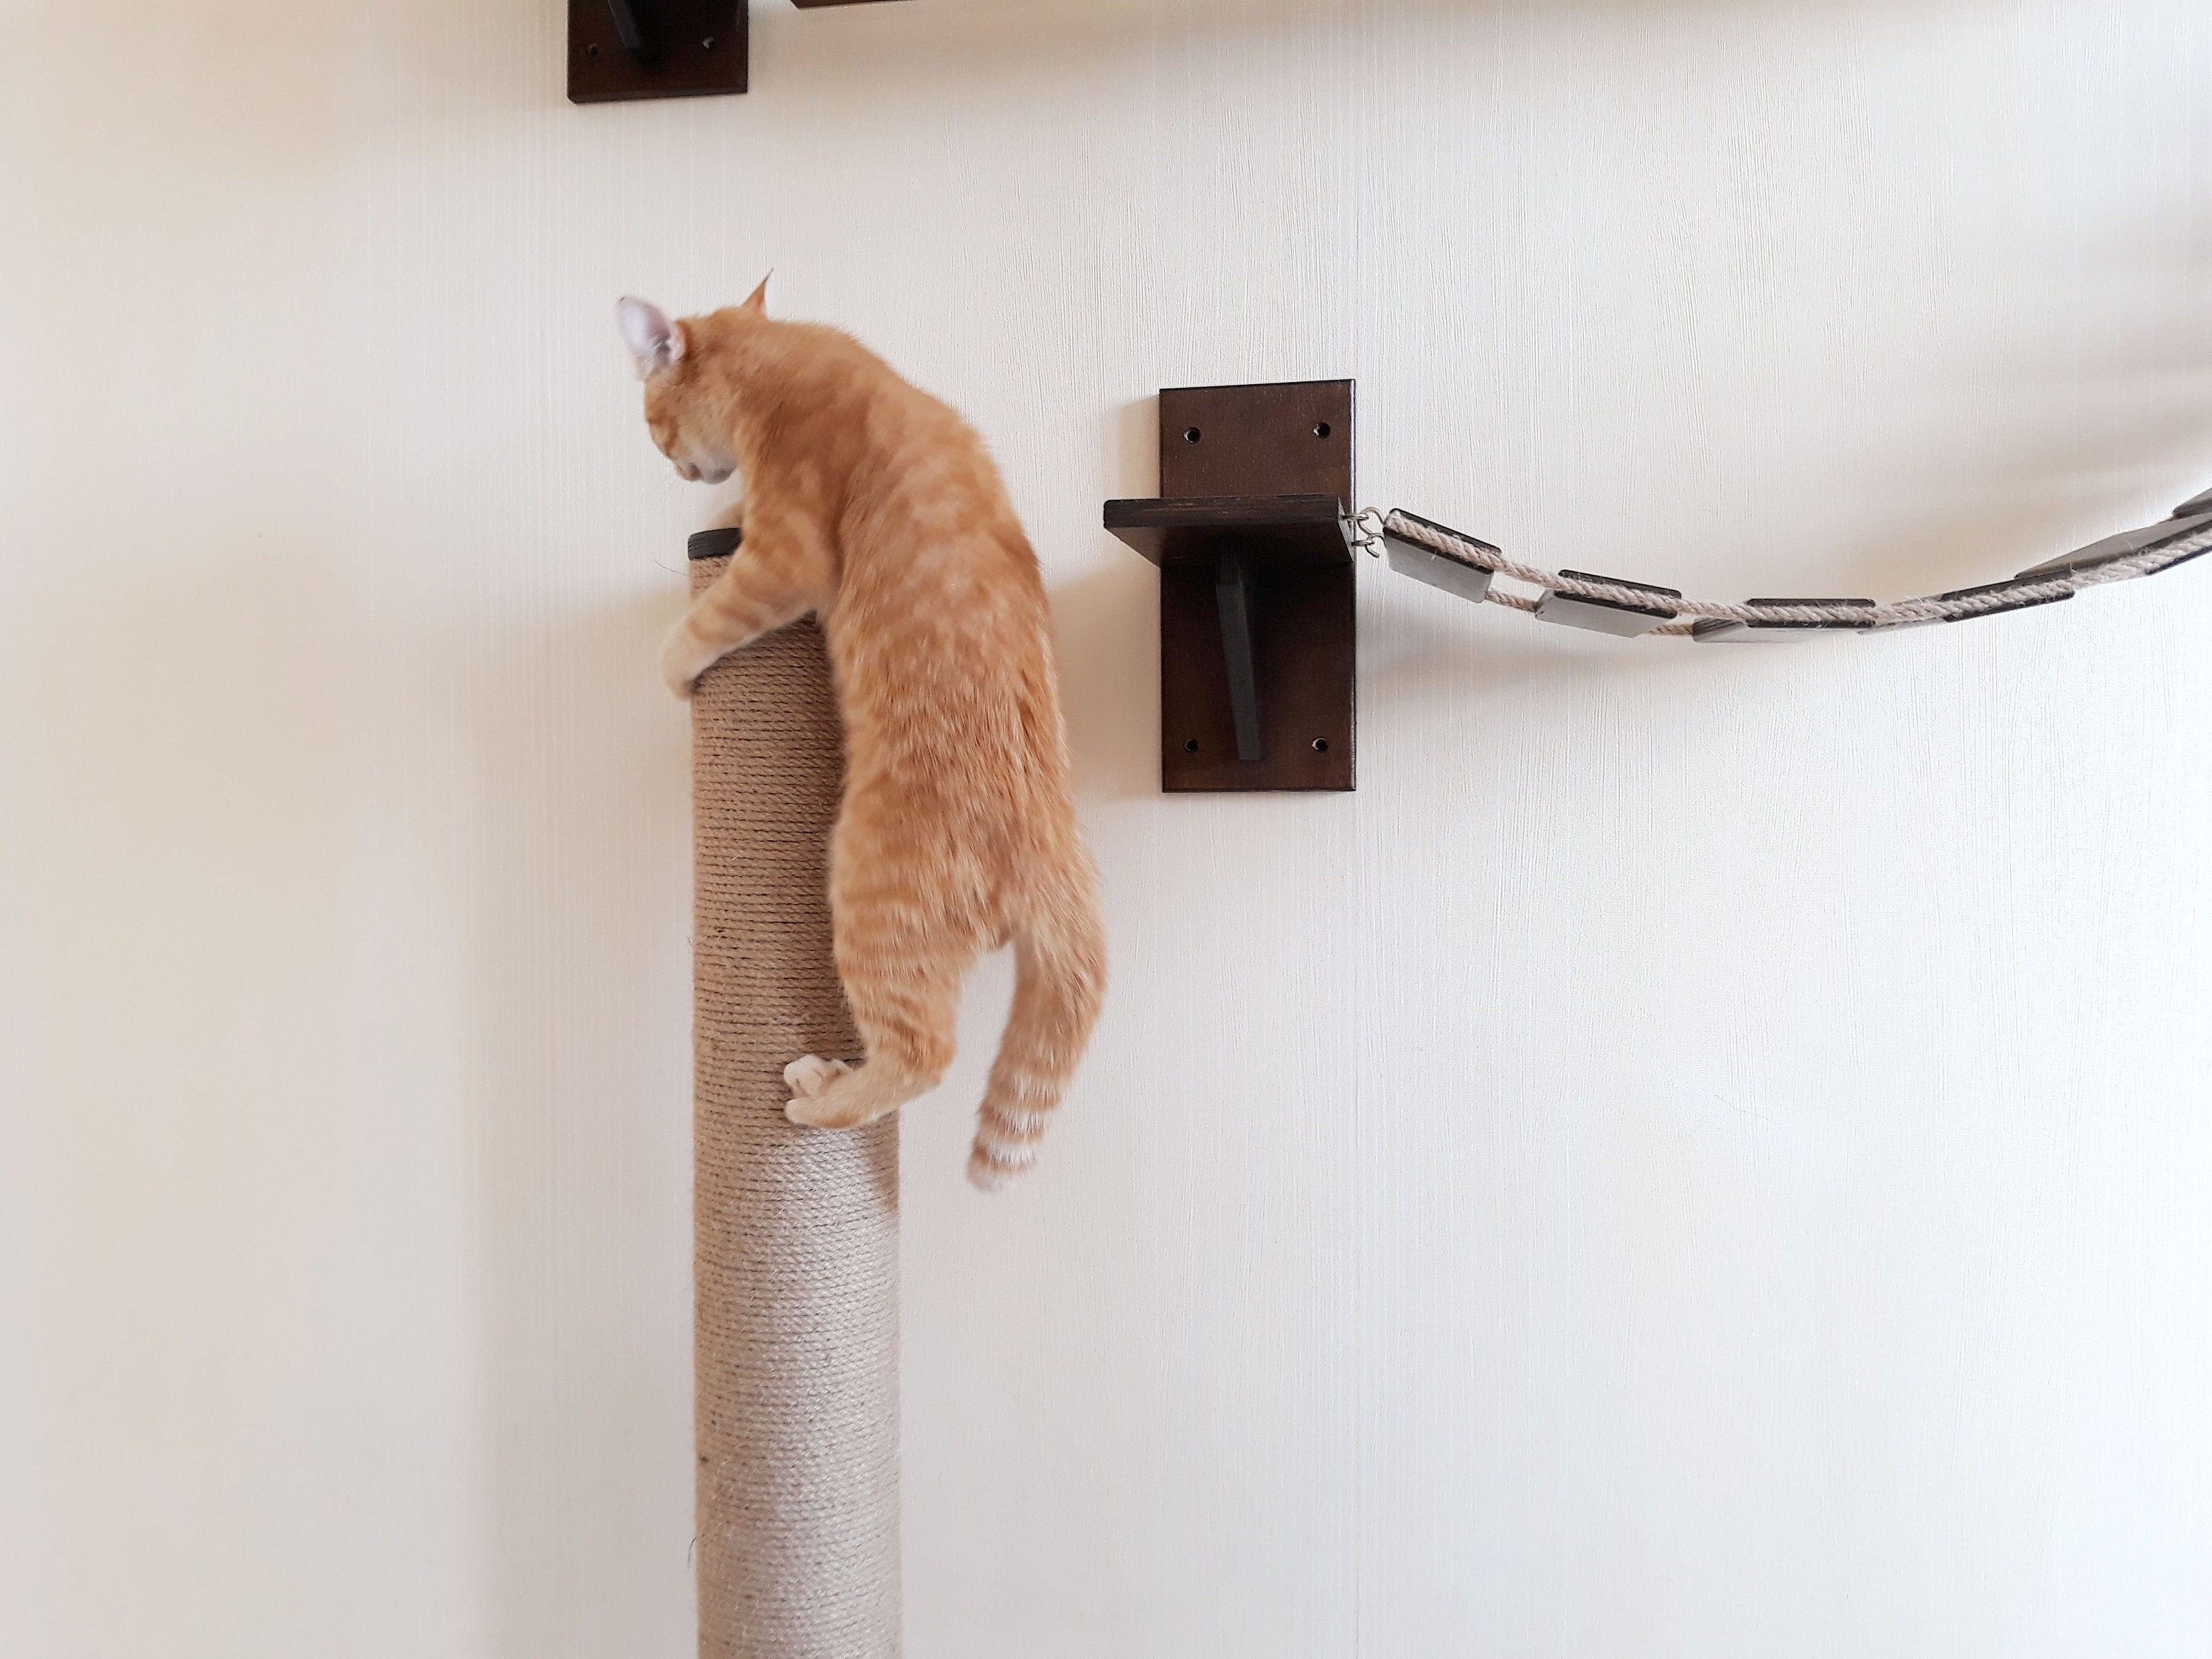 dp with climb larger track cat hammock mounted amazon com catastrophicreations unfinished shelves tree mod view handcrafted